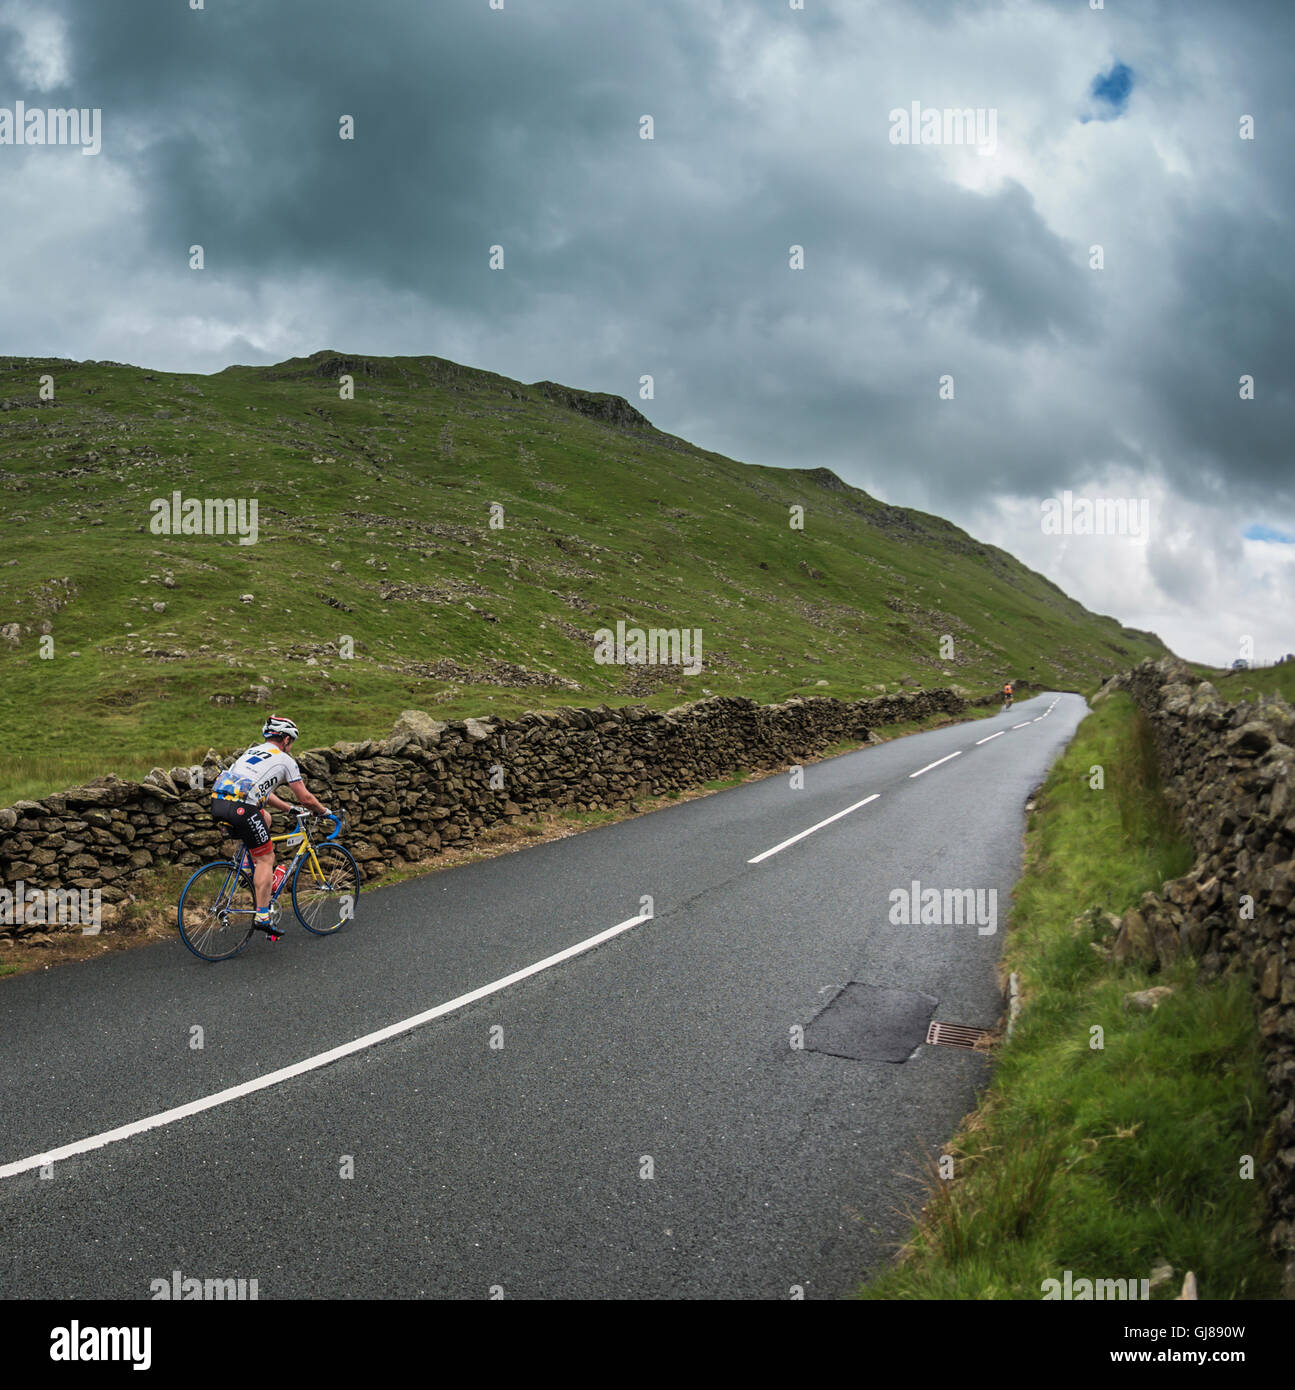 Cyclist taking part in the Mighty Corinthian vintage cycling event in Cumbria, UK. - Stock Image